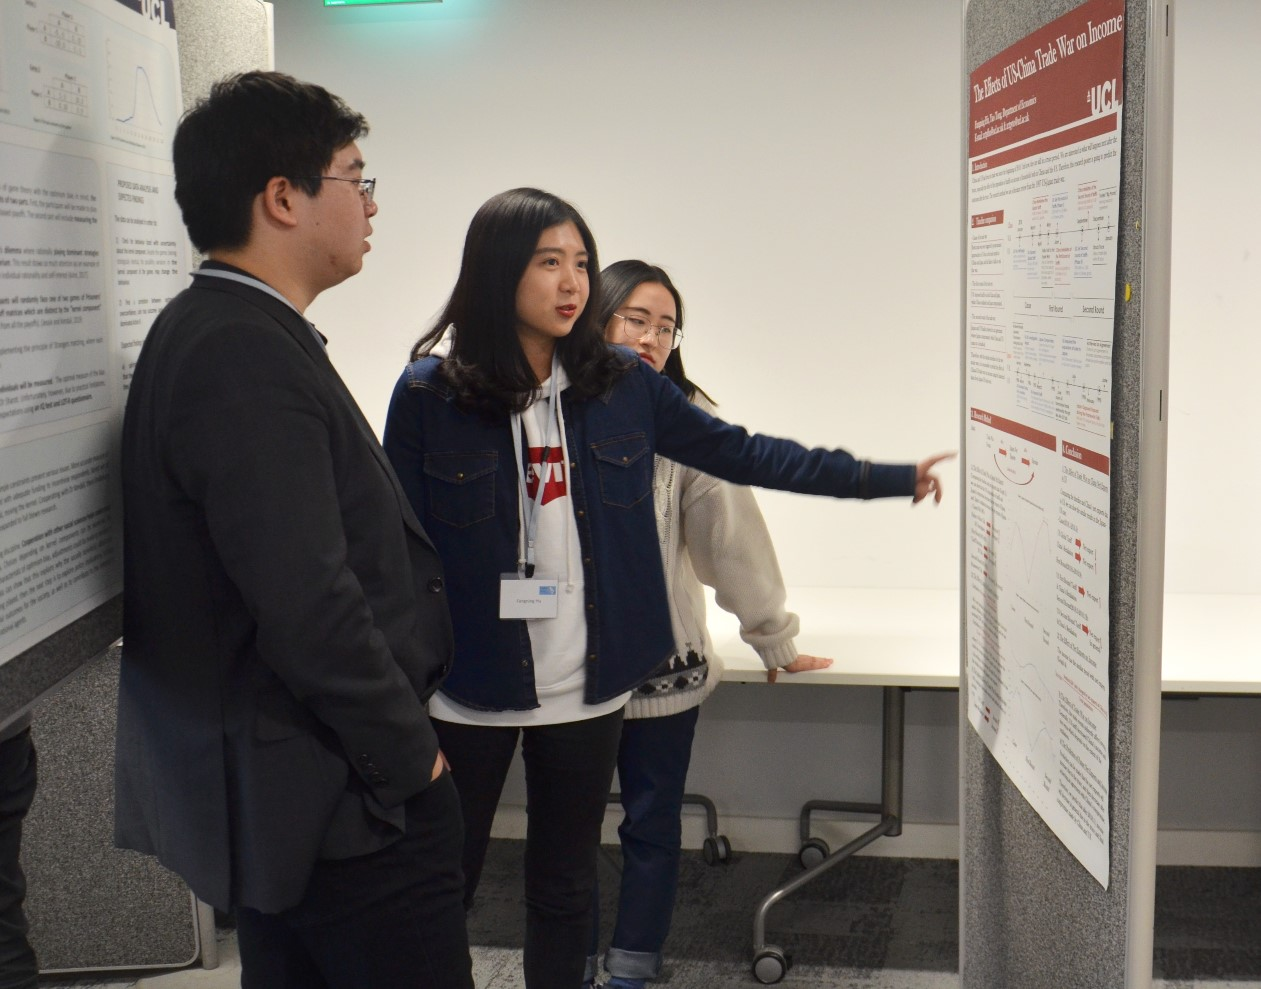 Fangning Hu and Yao Tong explaining their posters